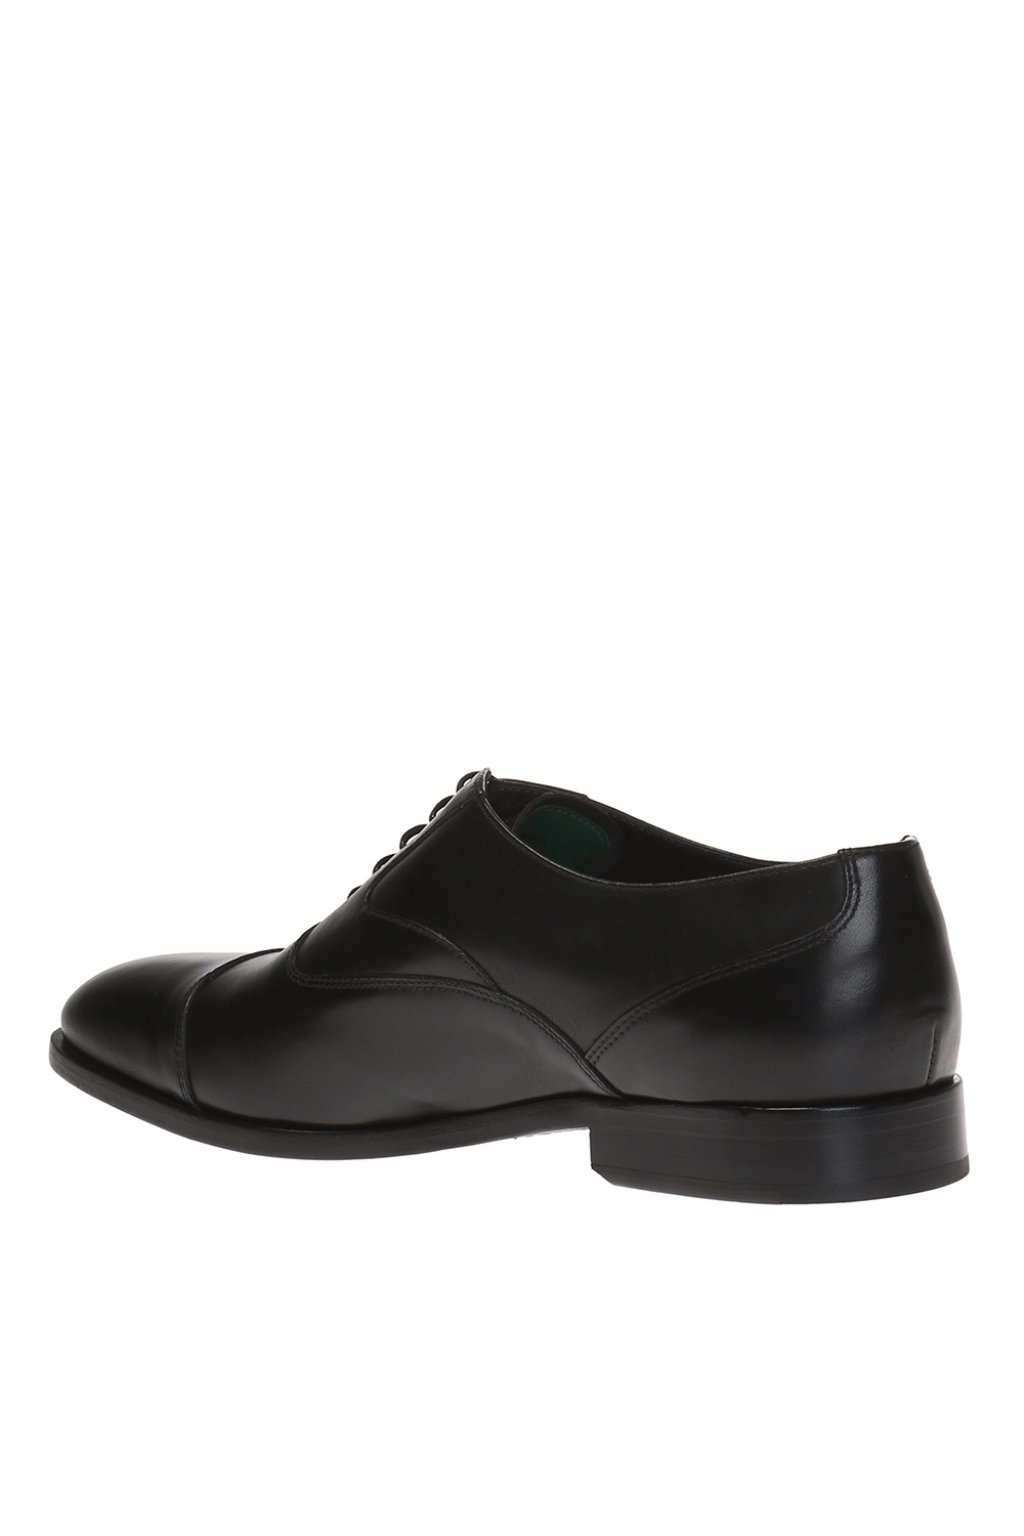 PS Paul Smith 'Tompkins' oxford shoes